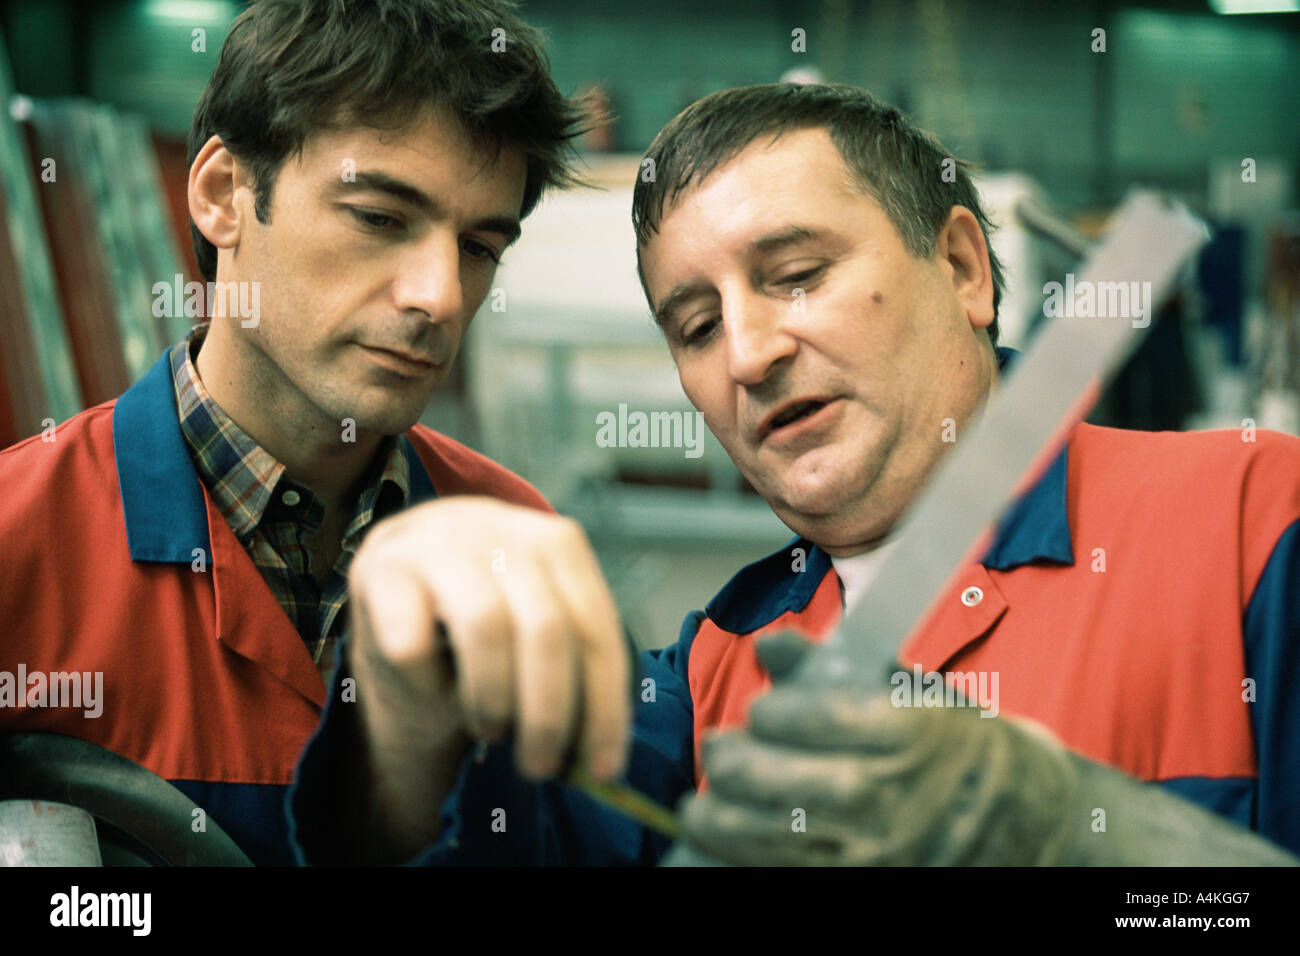 Manual and apprentice - Stock Image